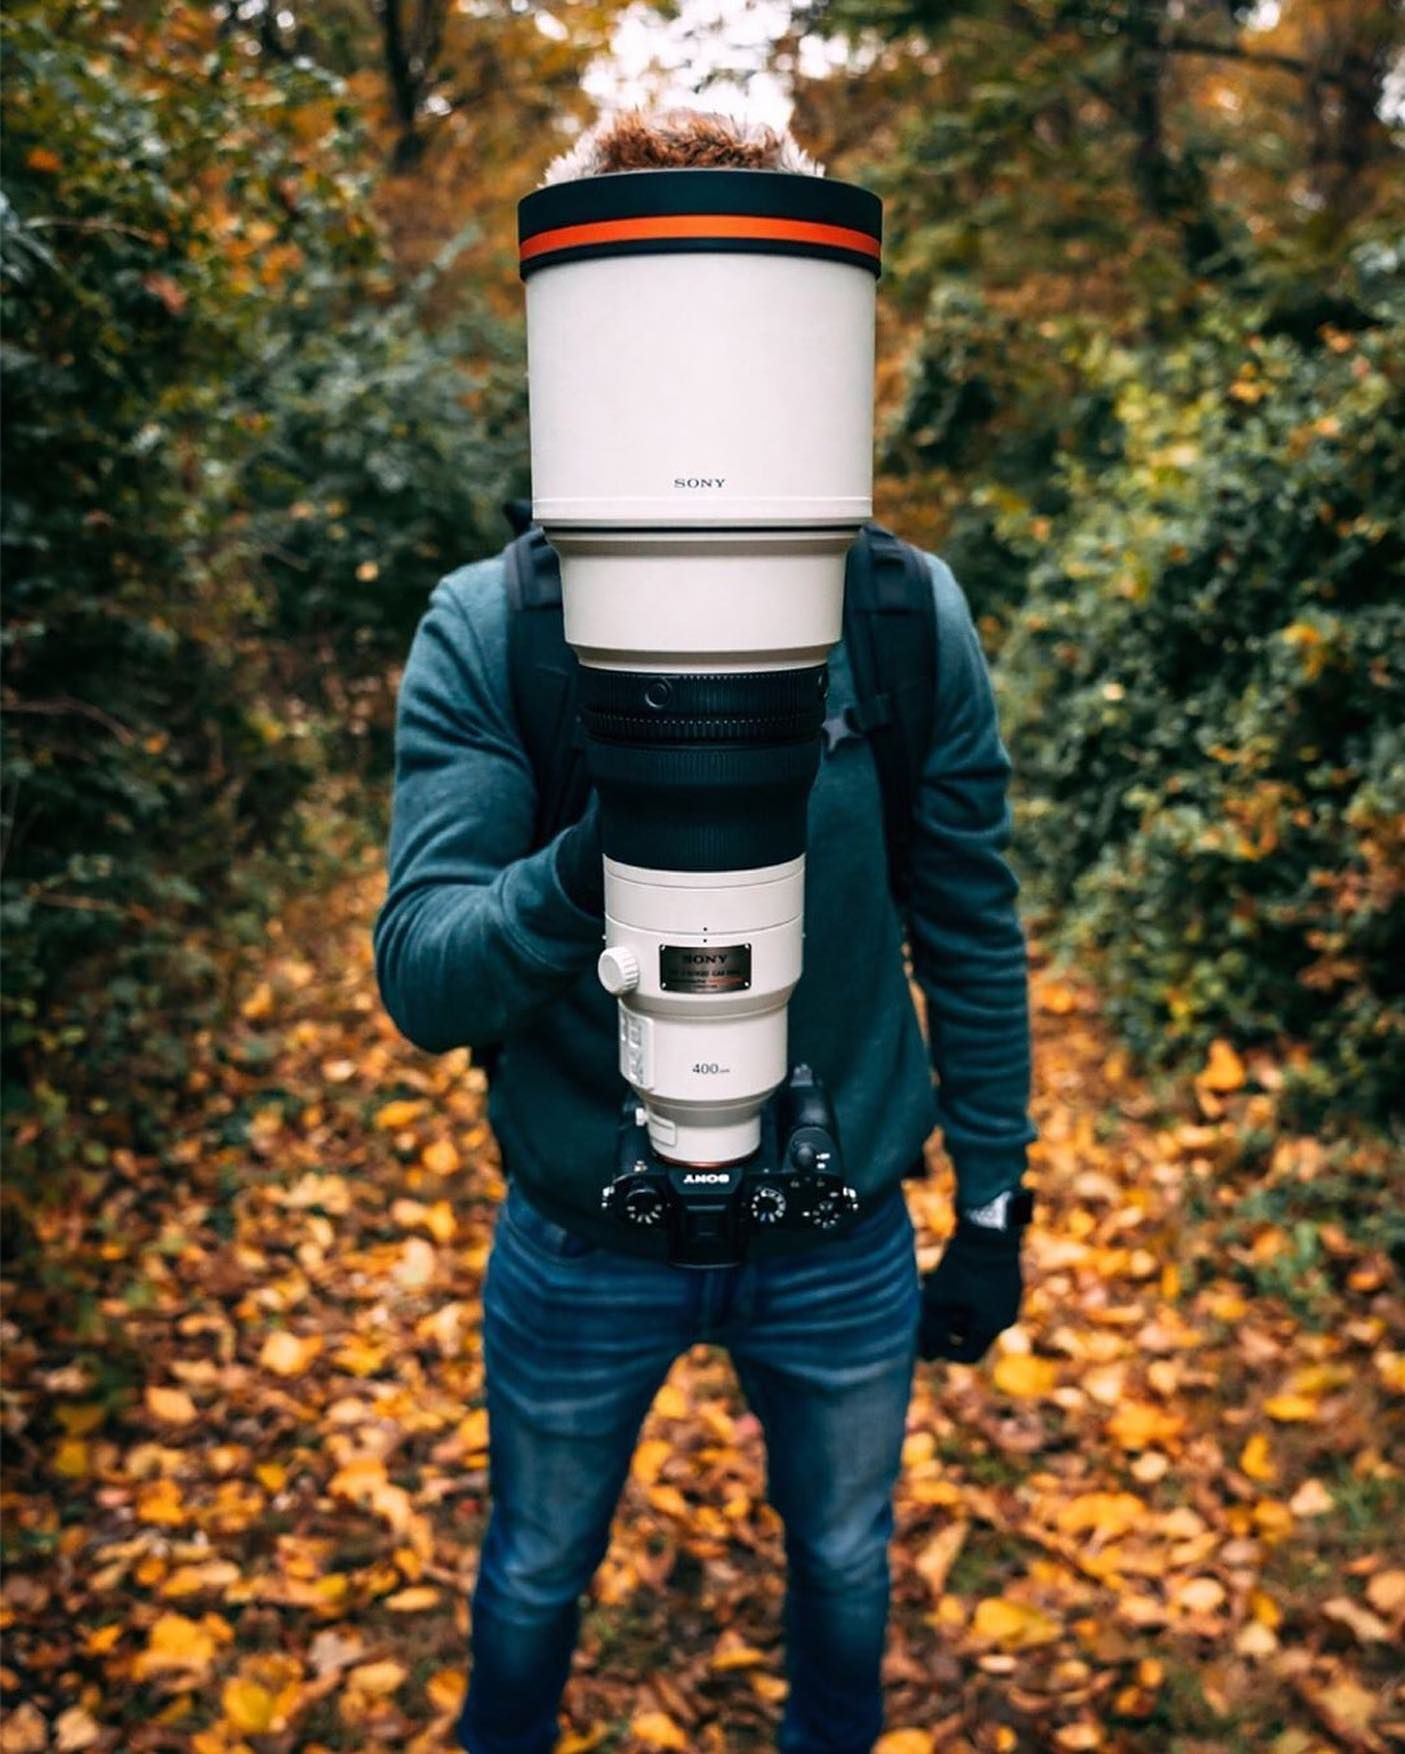 The Mother Of All Lenses Sony 400mm F2 8 From Mavic Mitch Cameragear Sony Sonyalpha Productphotography Sonycamera M Sony Camera Camera Gear Sony